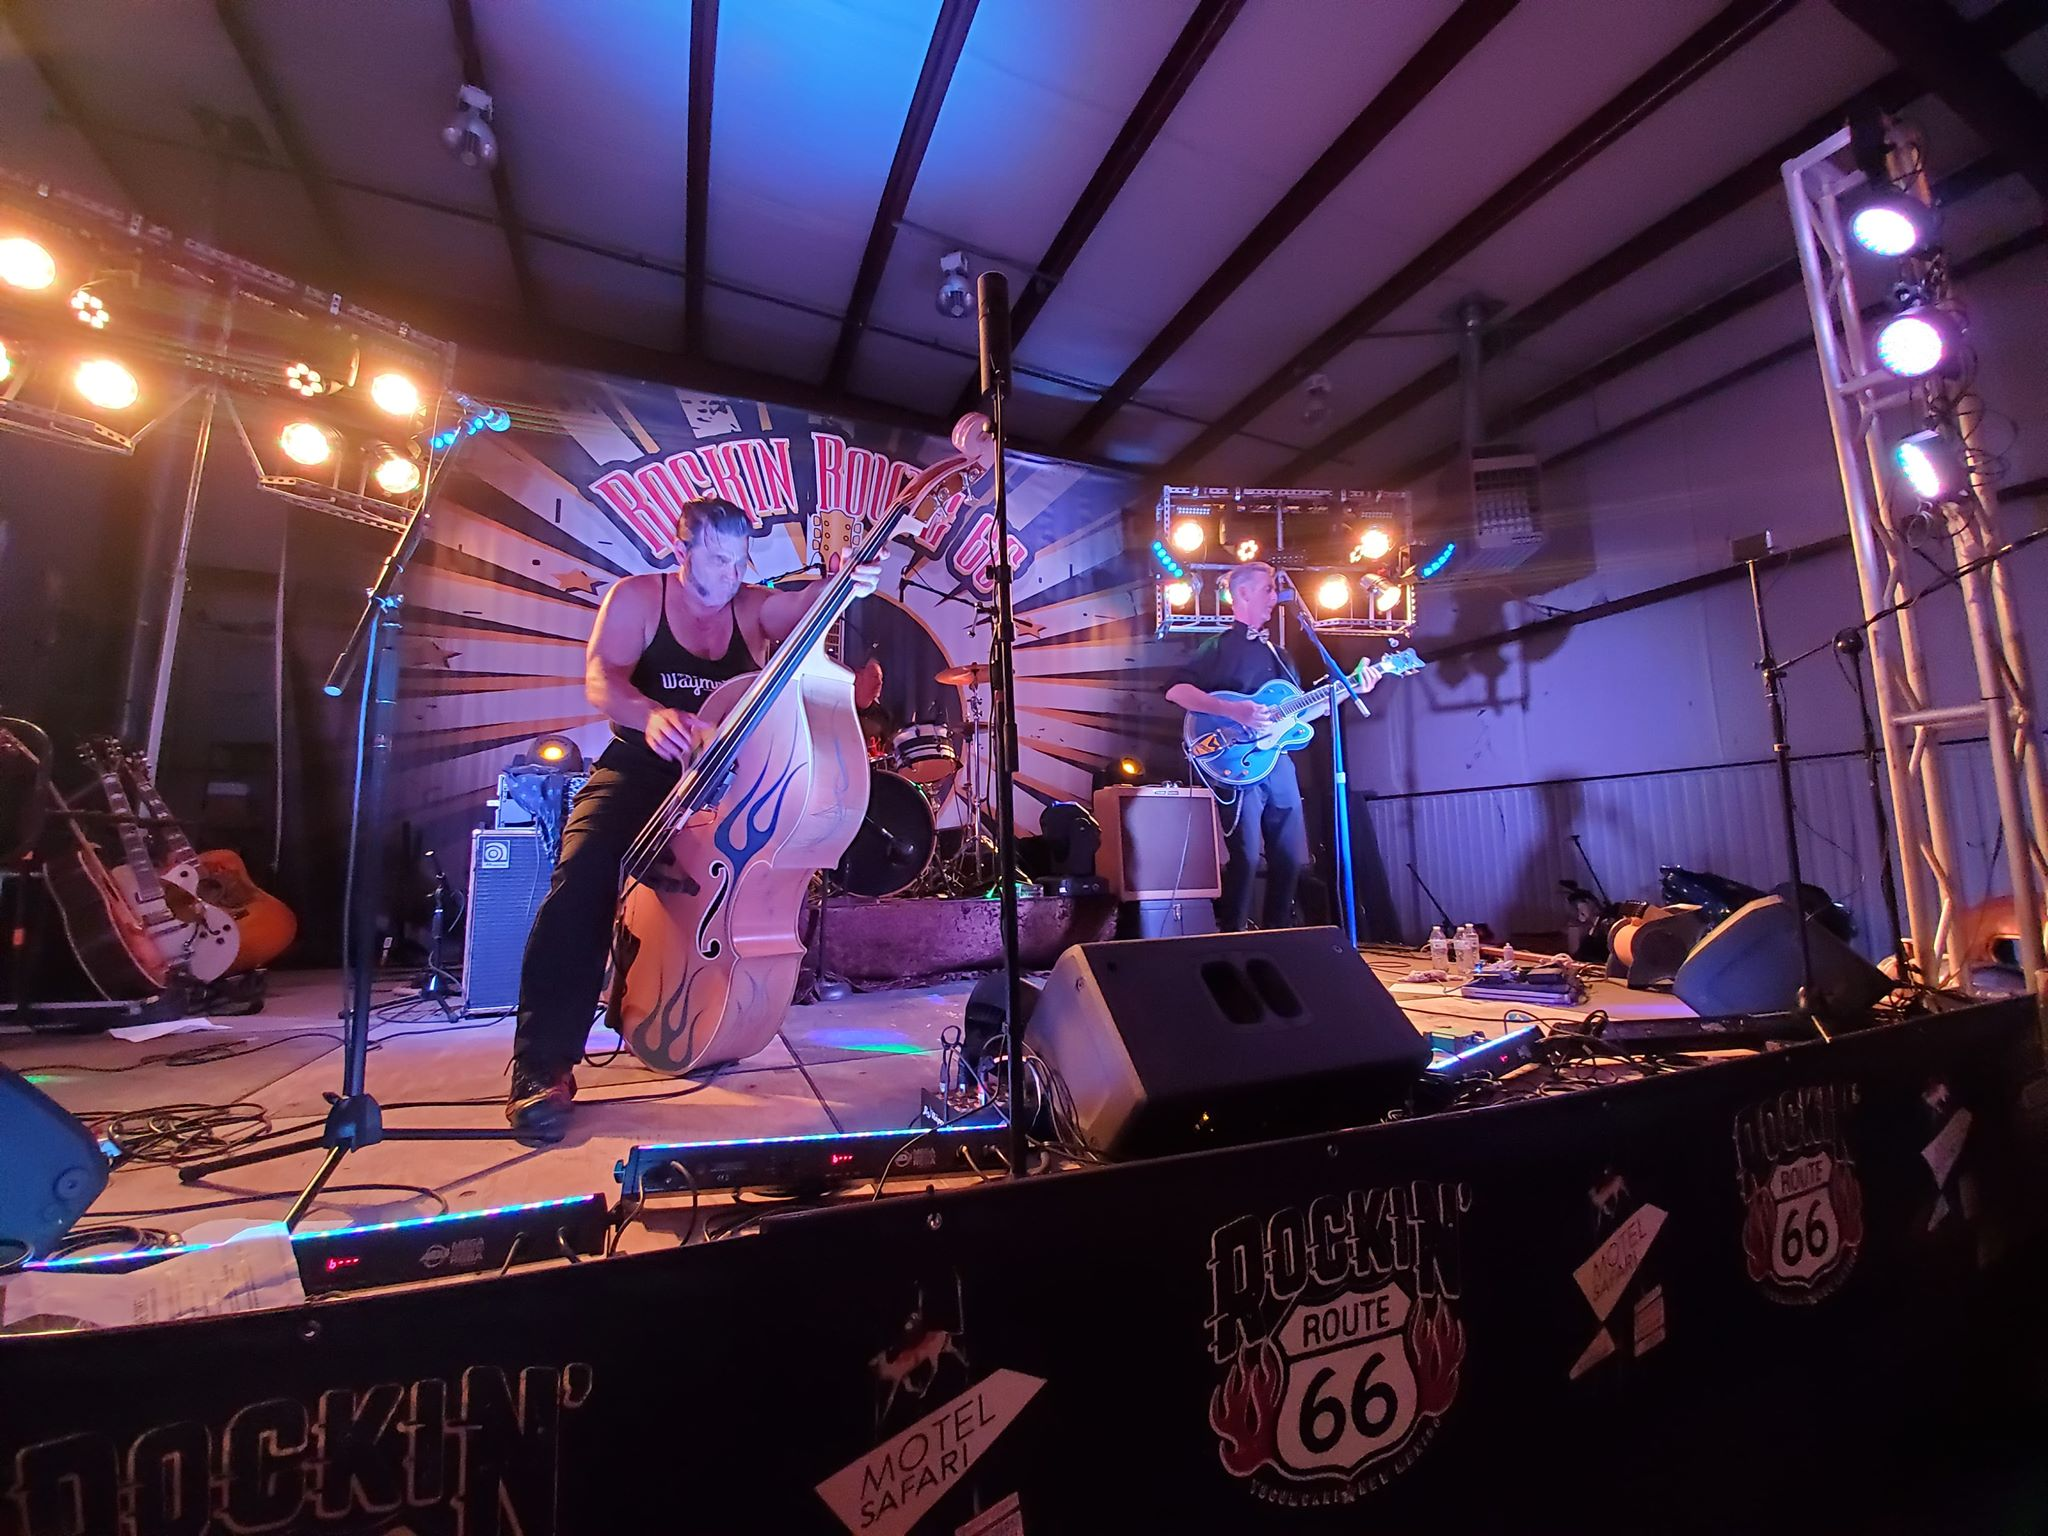 Slim and the Gems performing at Rockin Route 66 Livestream